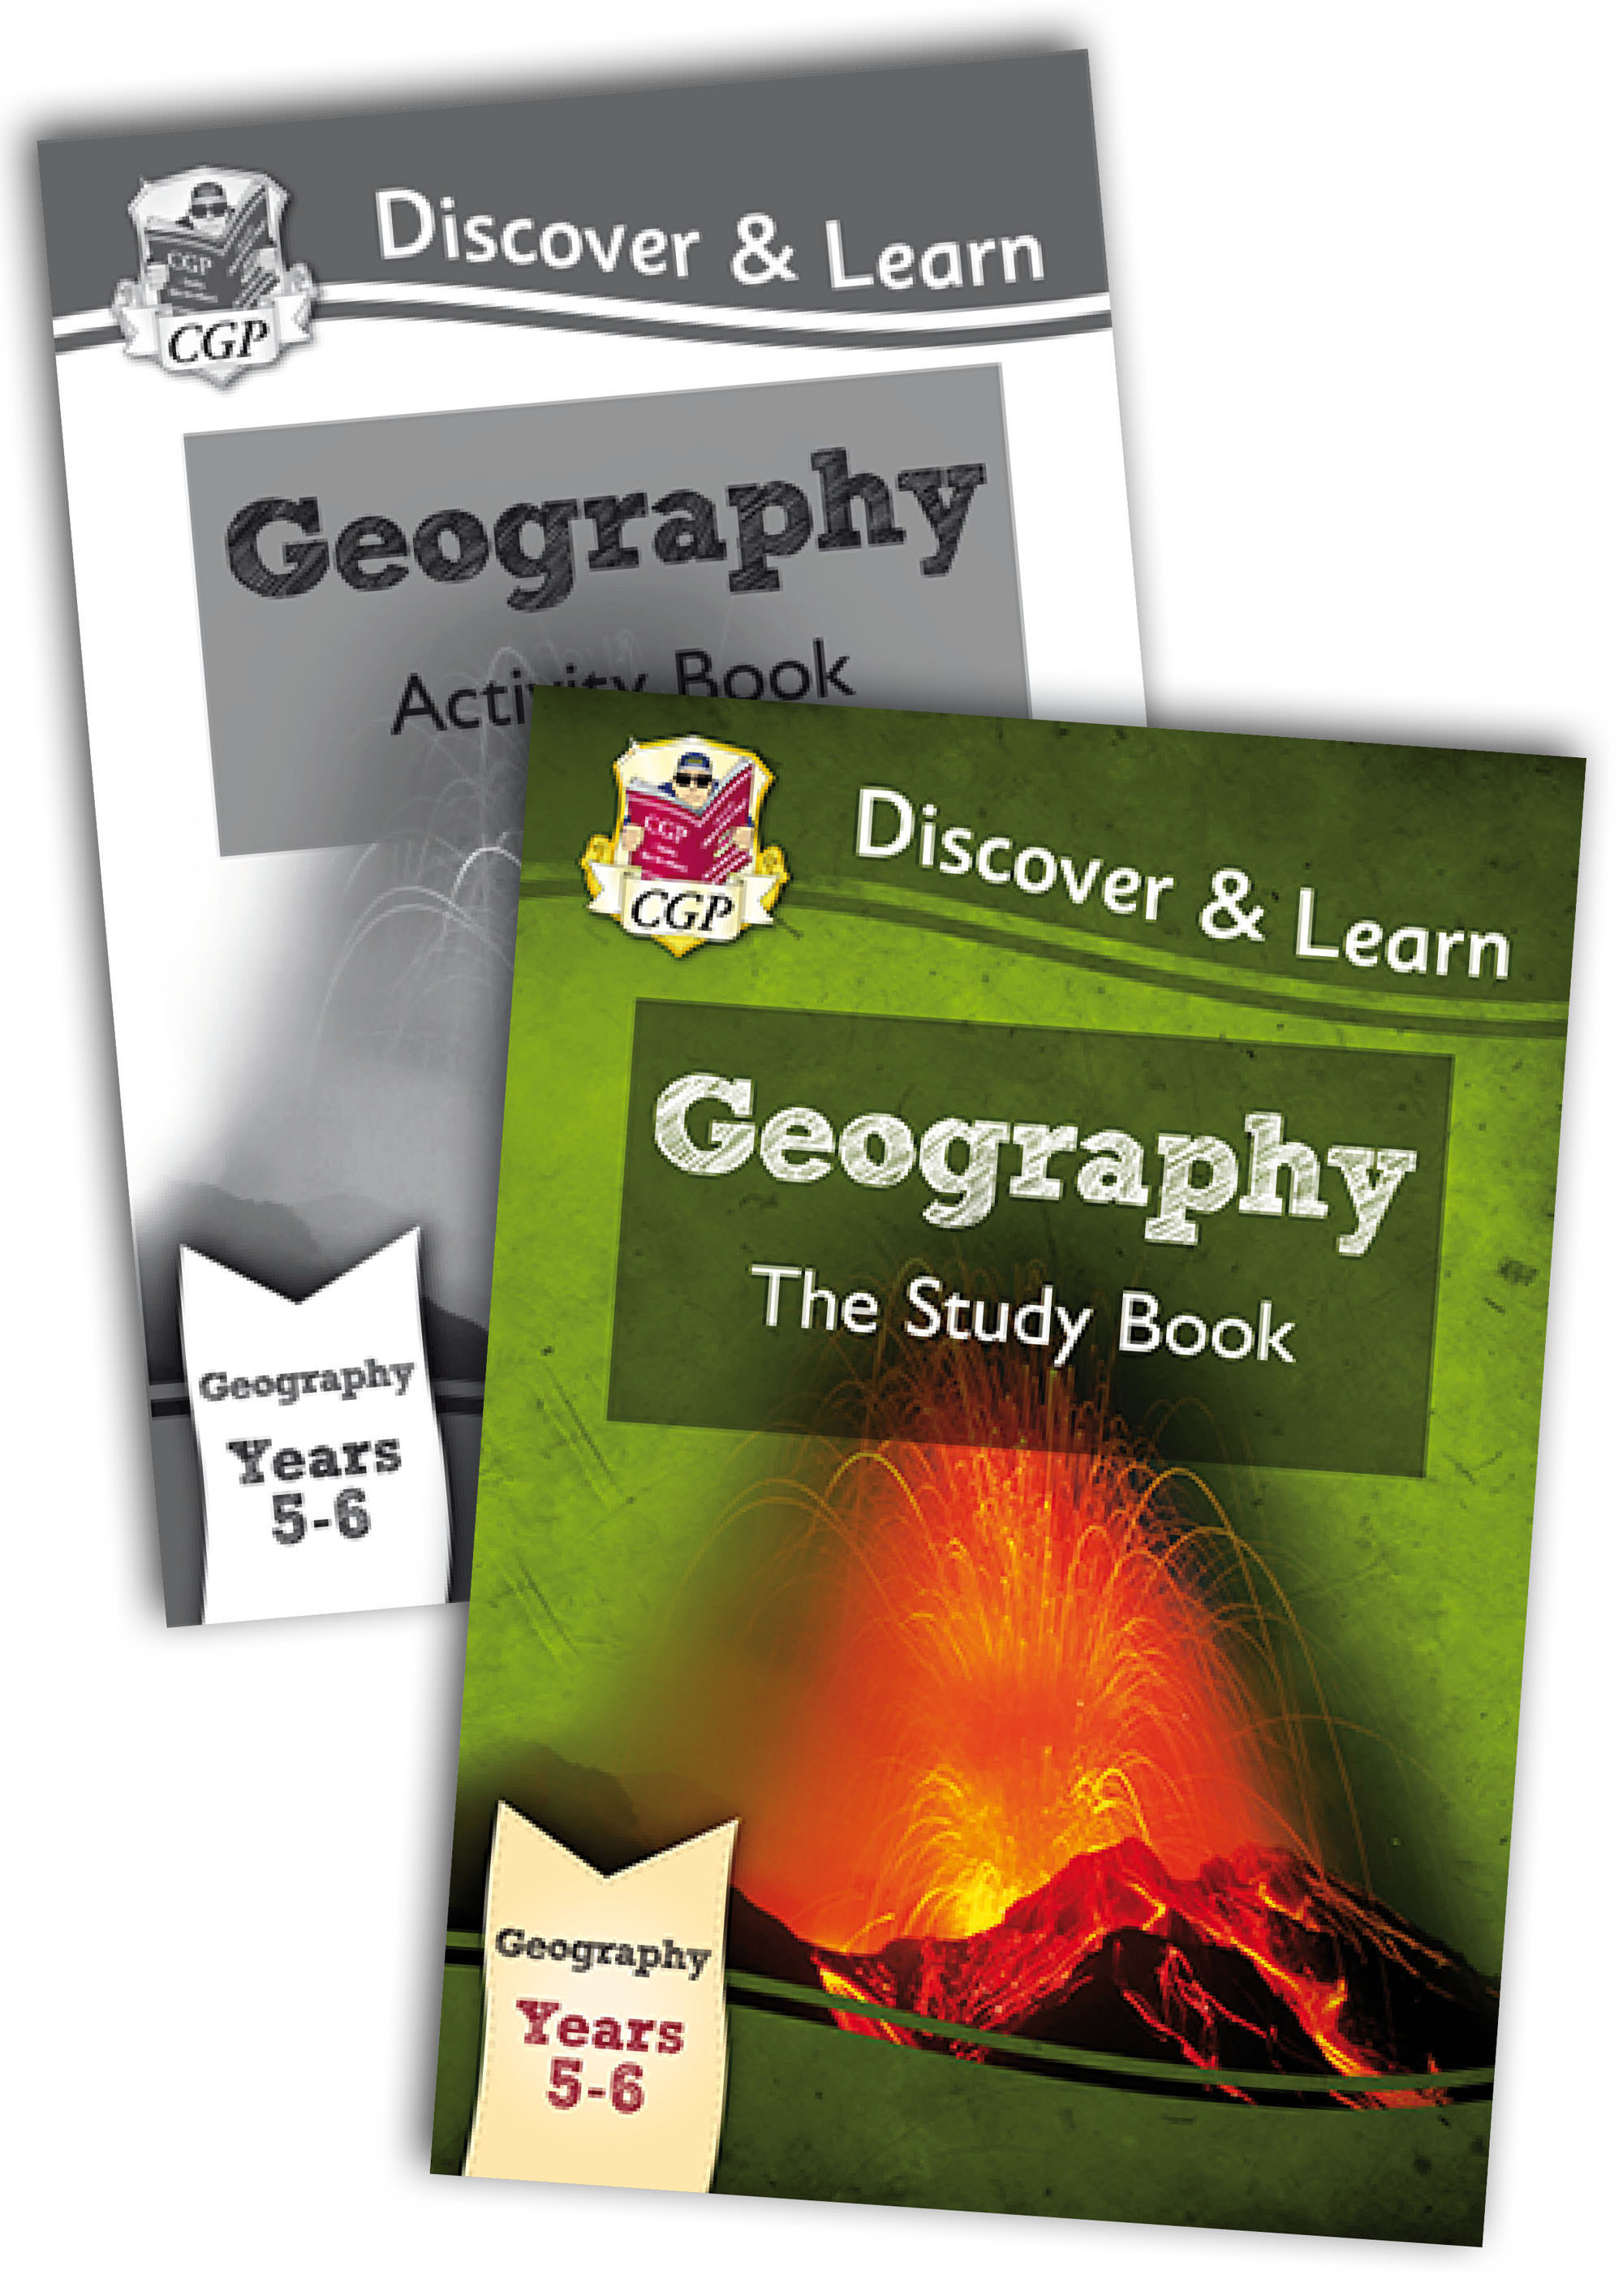 G2B21 - KS2 Discover & Learn: Geography Year 5 & 6 Bundle